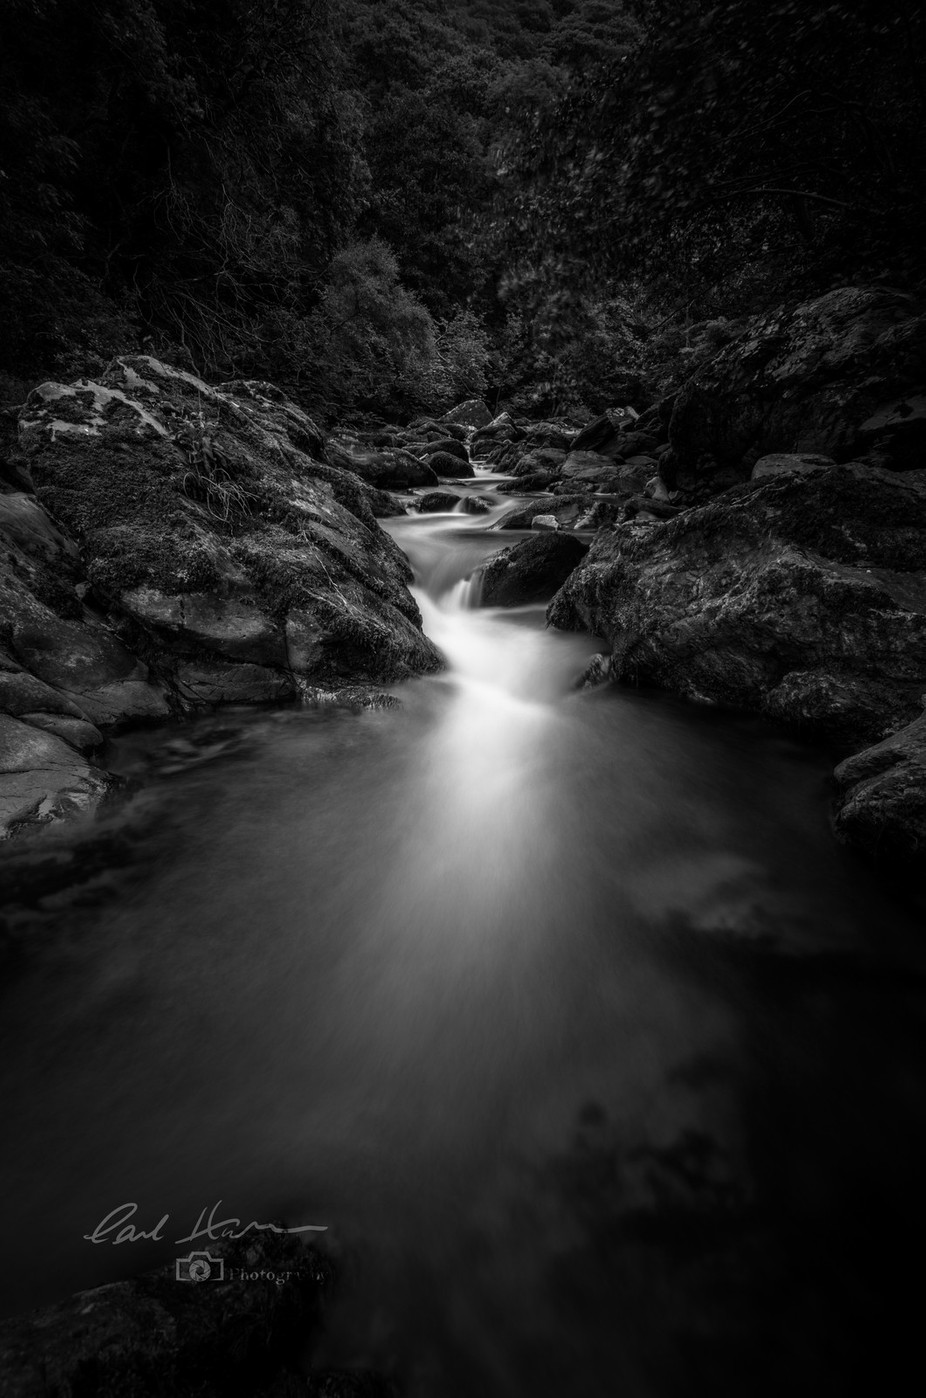 'River Lyn' by carlhudson - A Black And White World Photo Contest